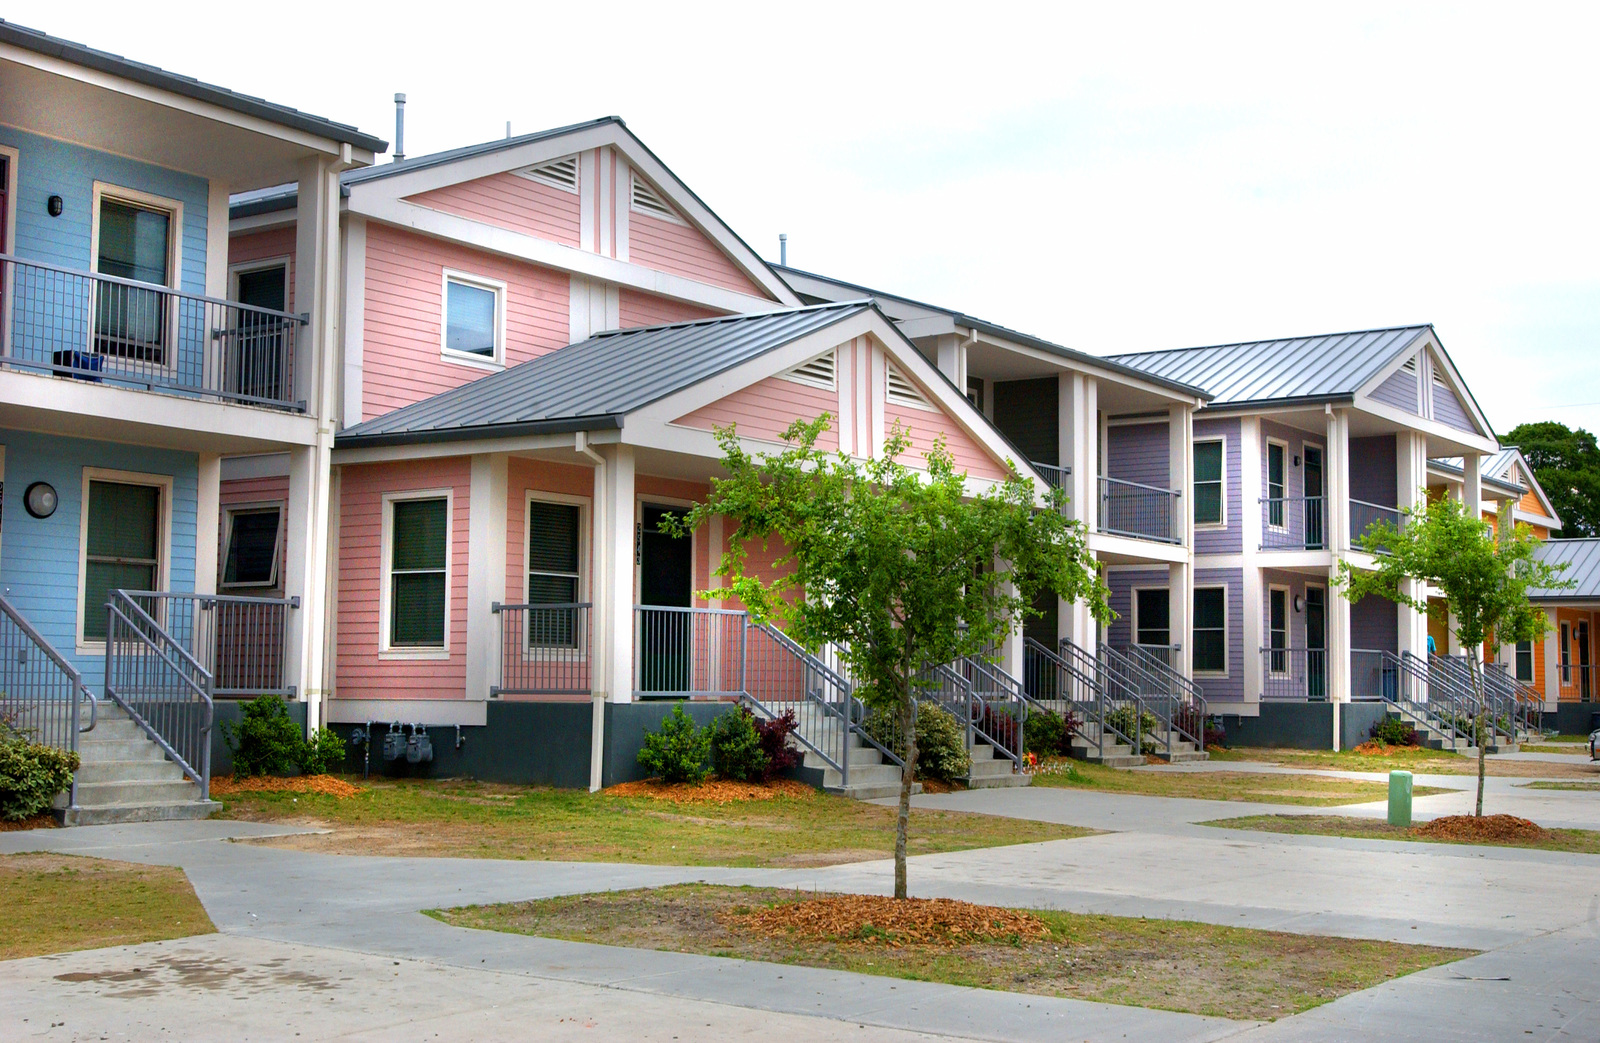 [Select views of}  New Orleans, Louisiana:  New homeowners, [housing,  neighborhoods,] city scenes